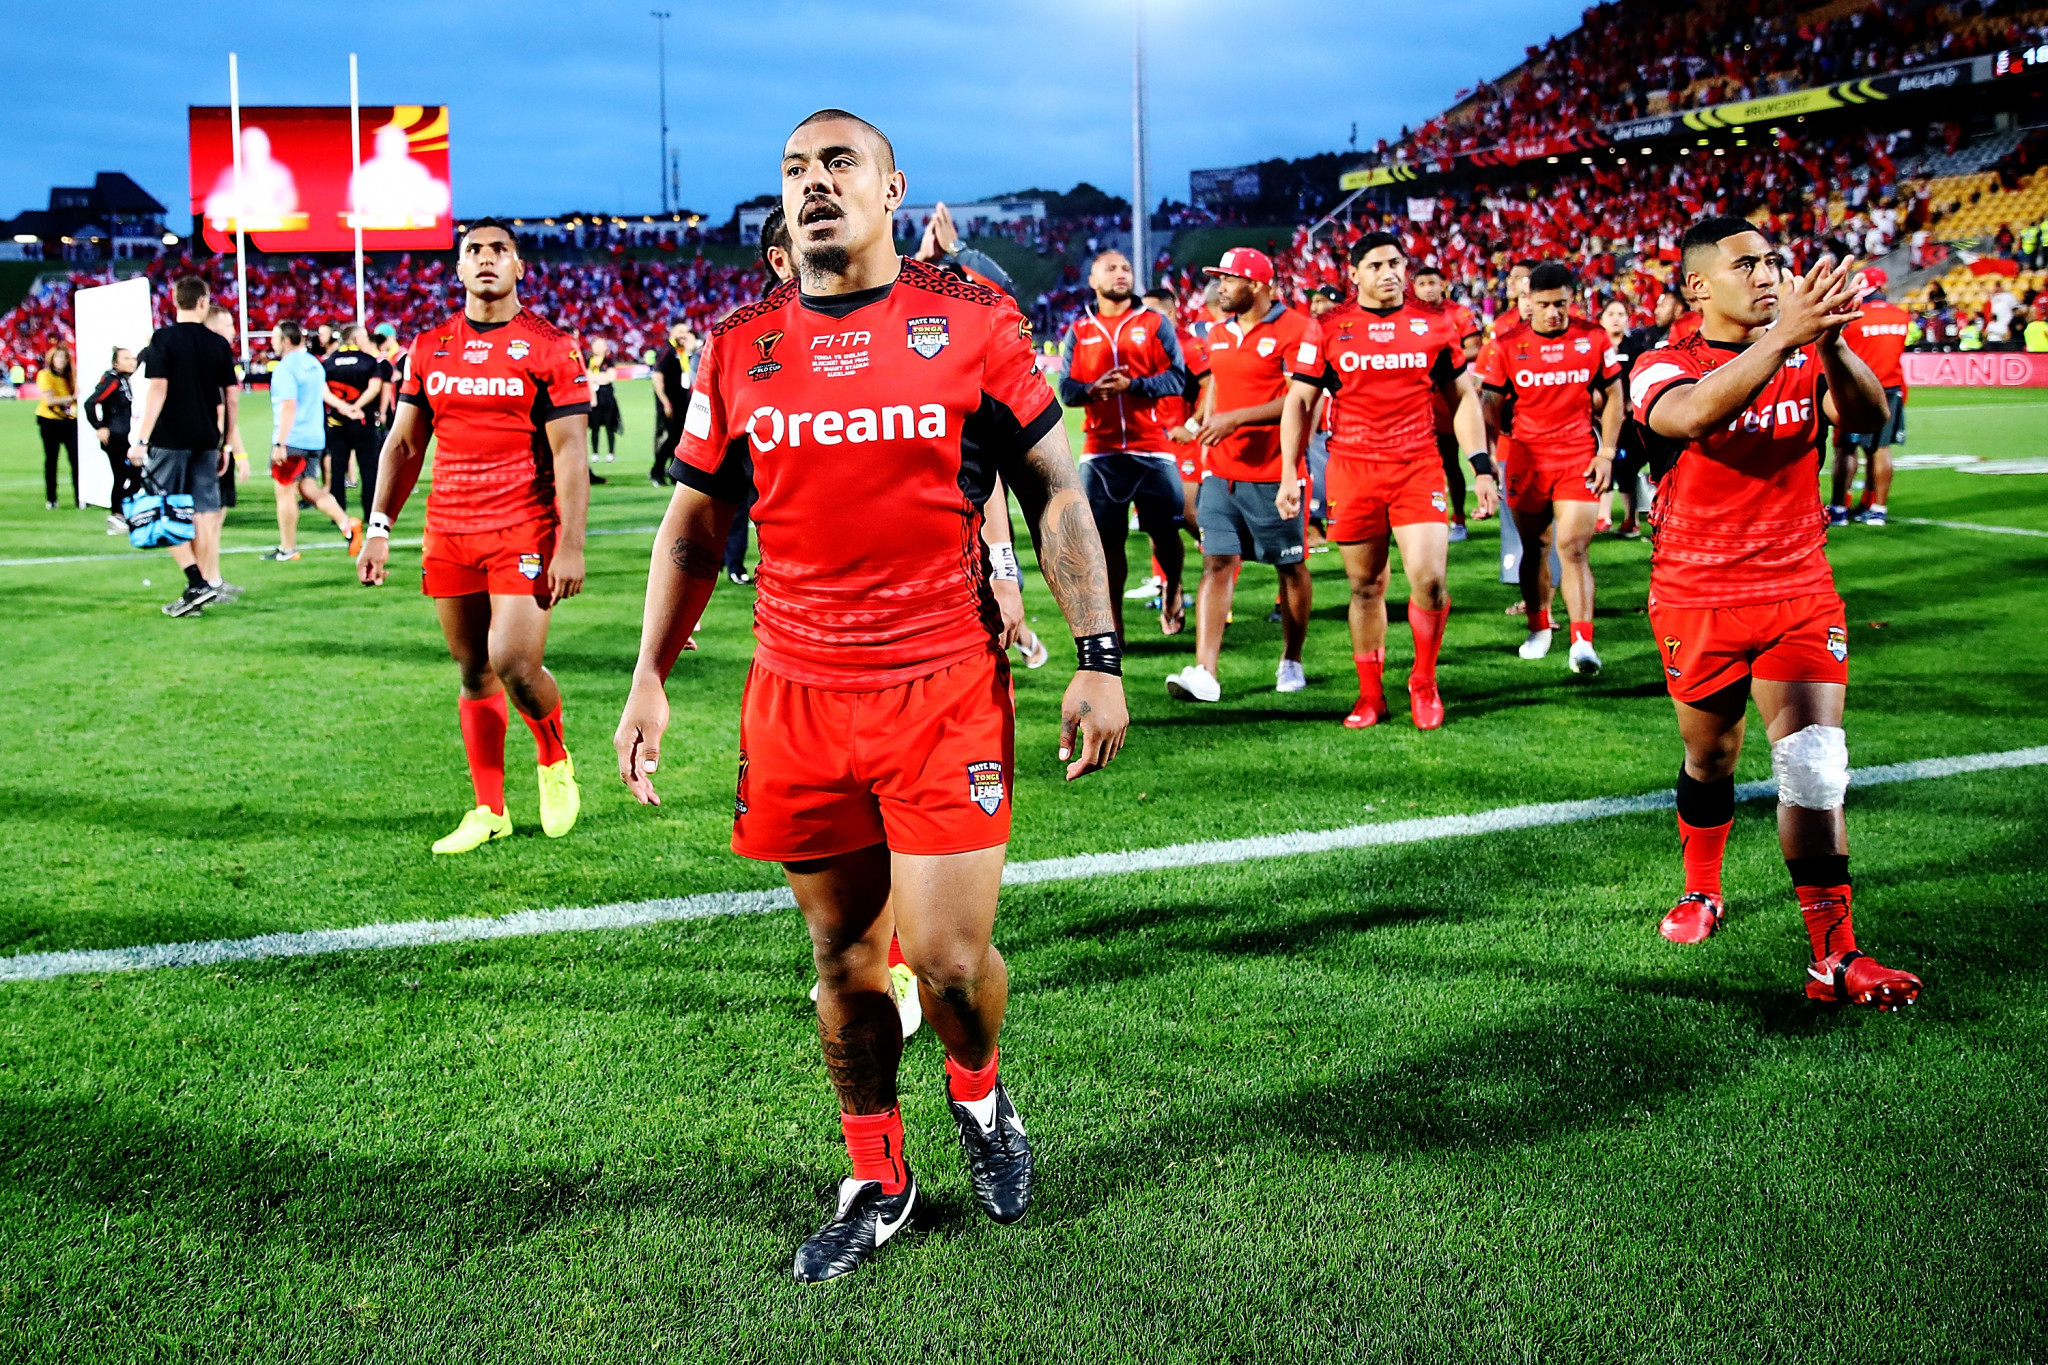 Tonga National Rugby League forms new board and seeks to grow sport